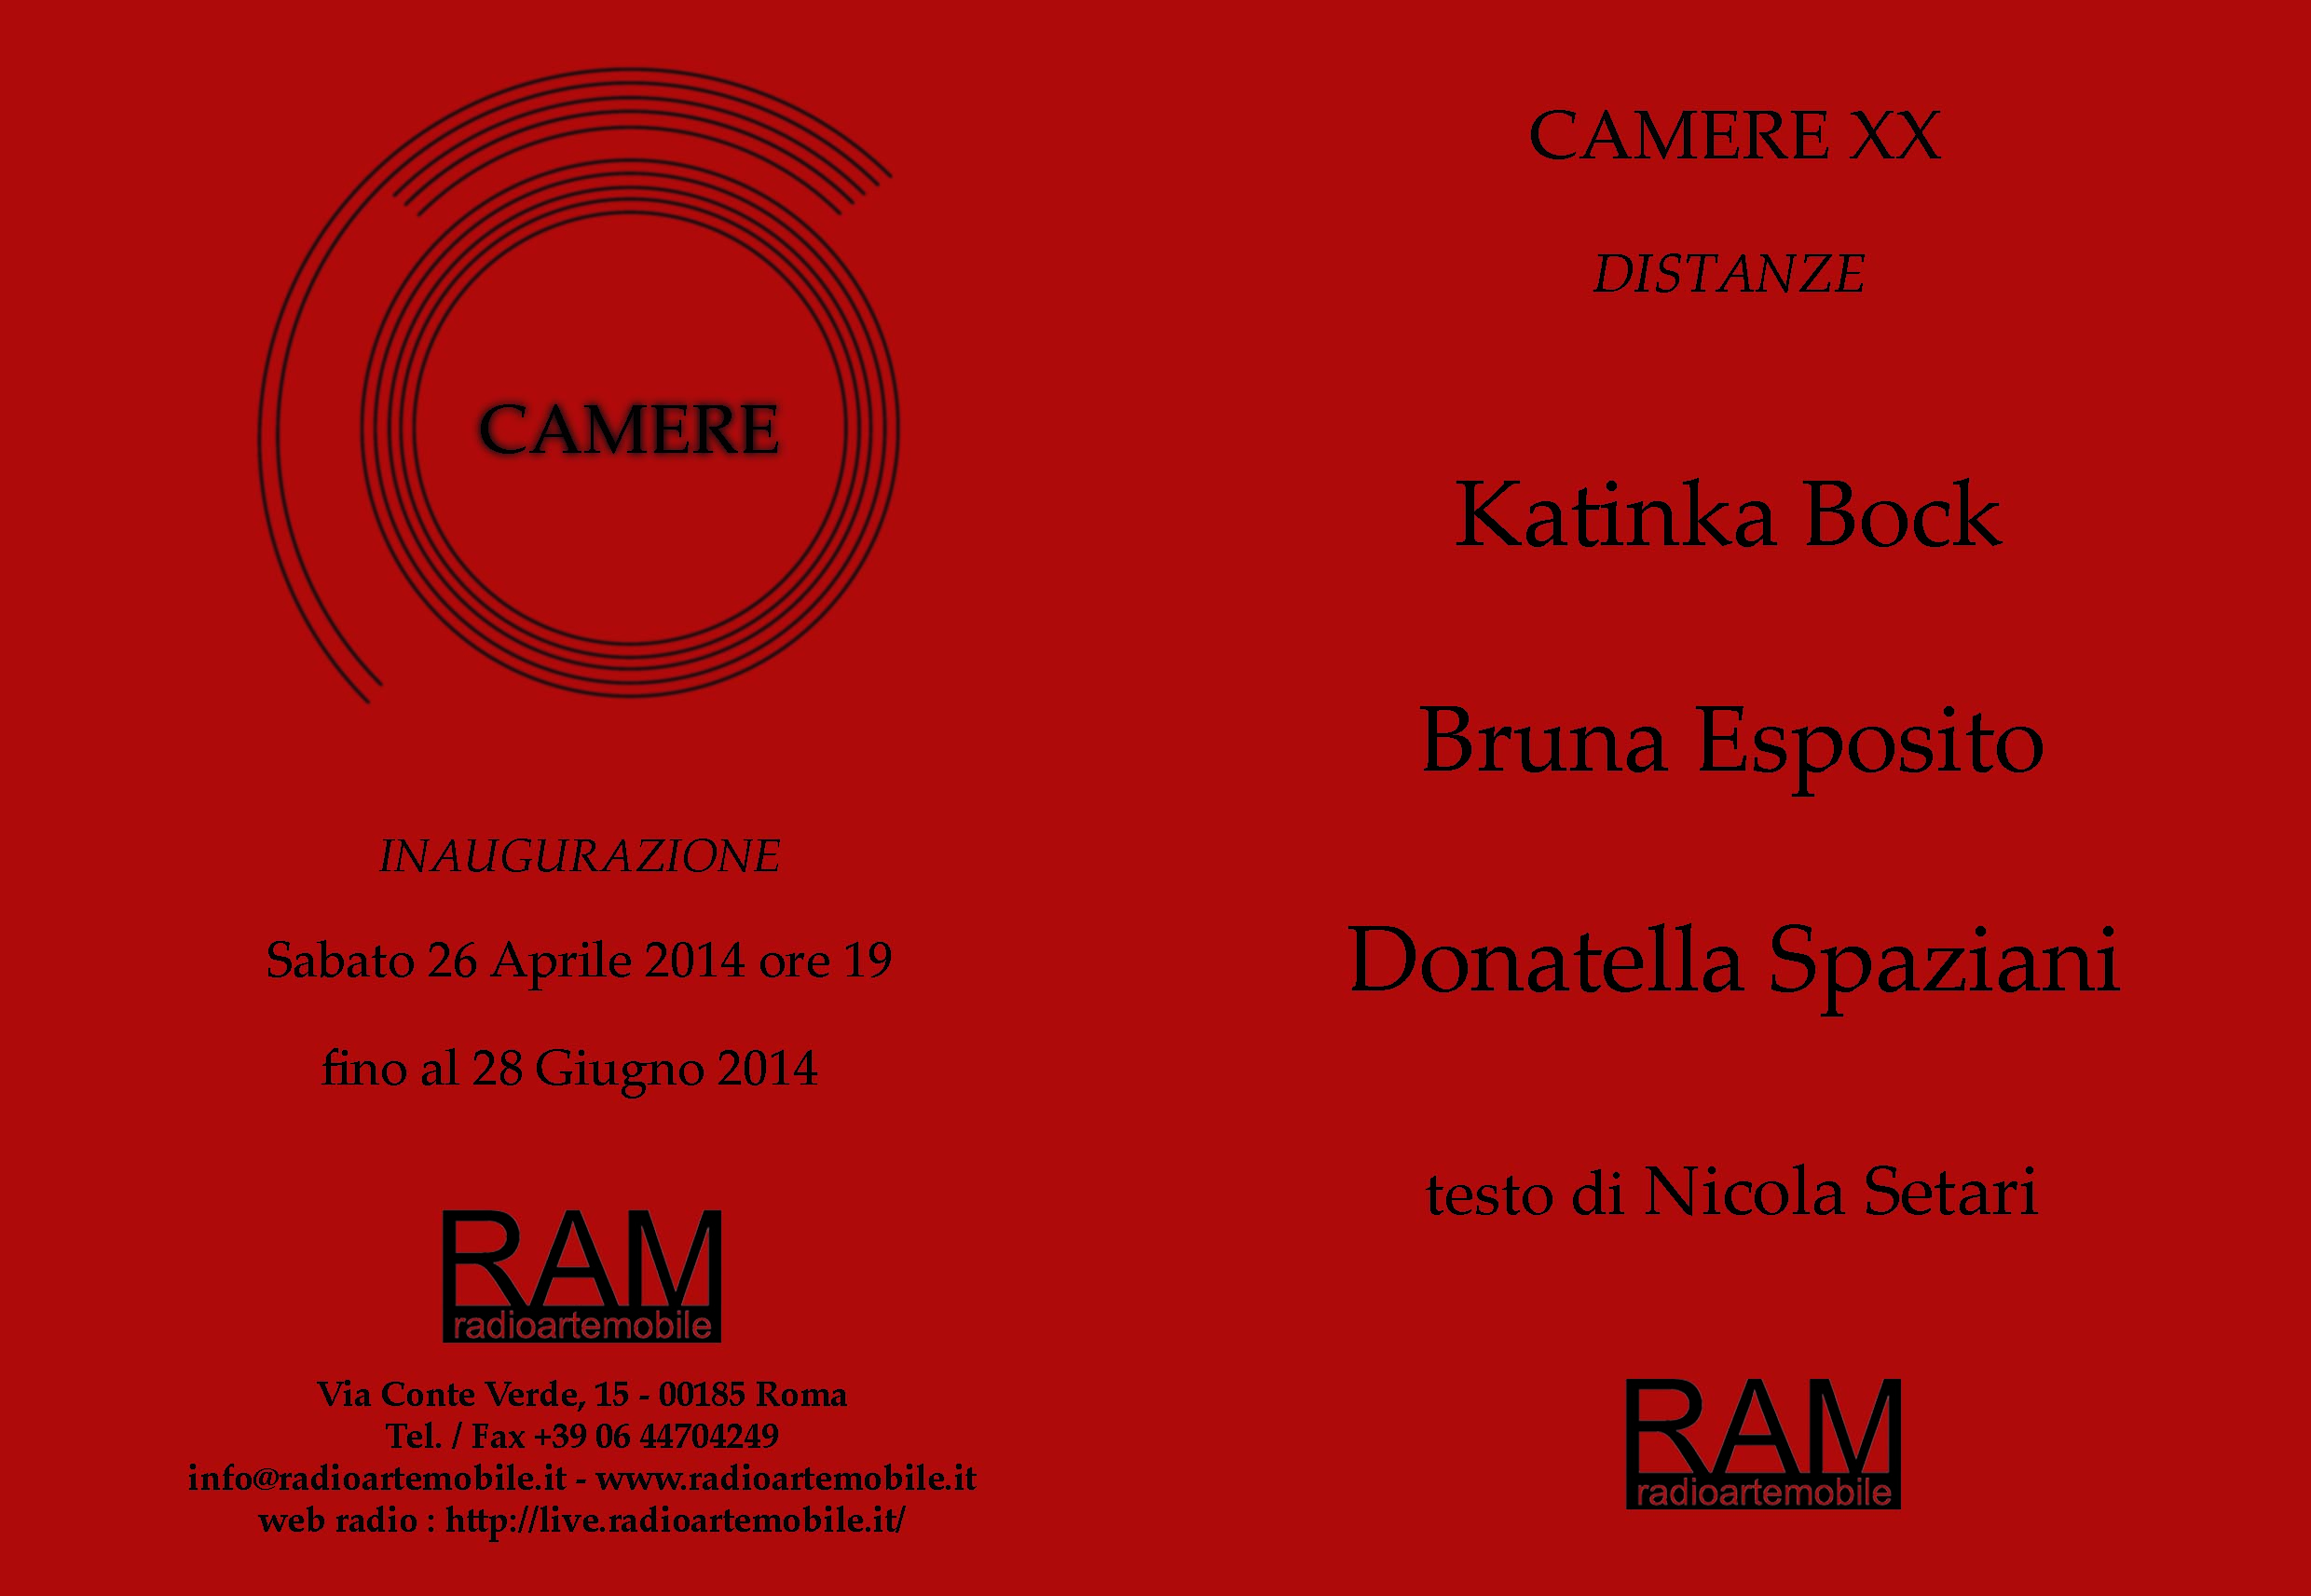 Invitation to Camere XX, ram